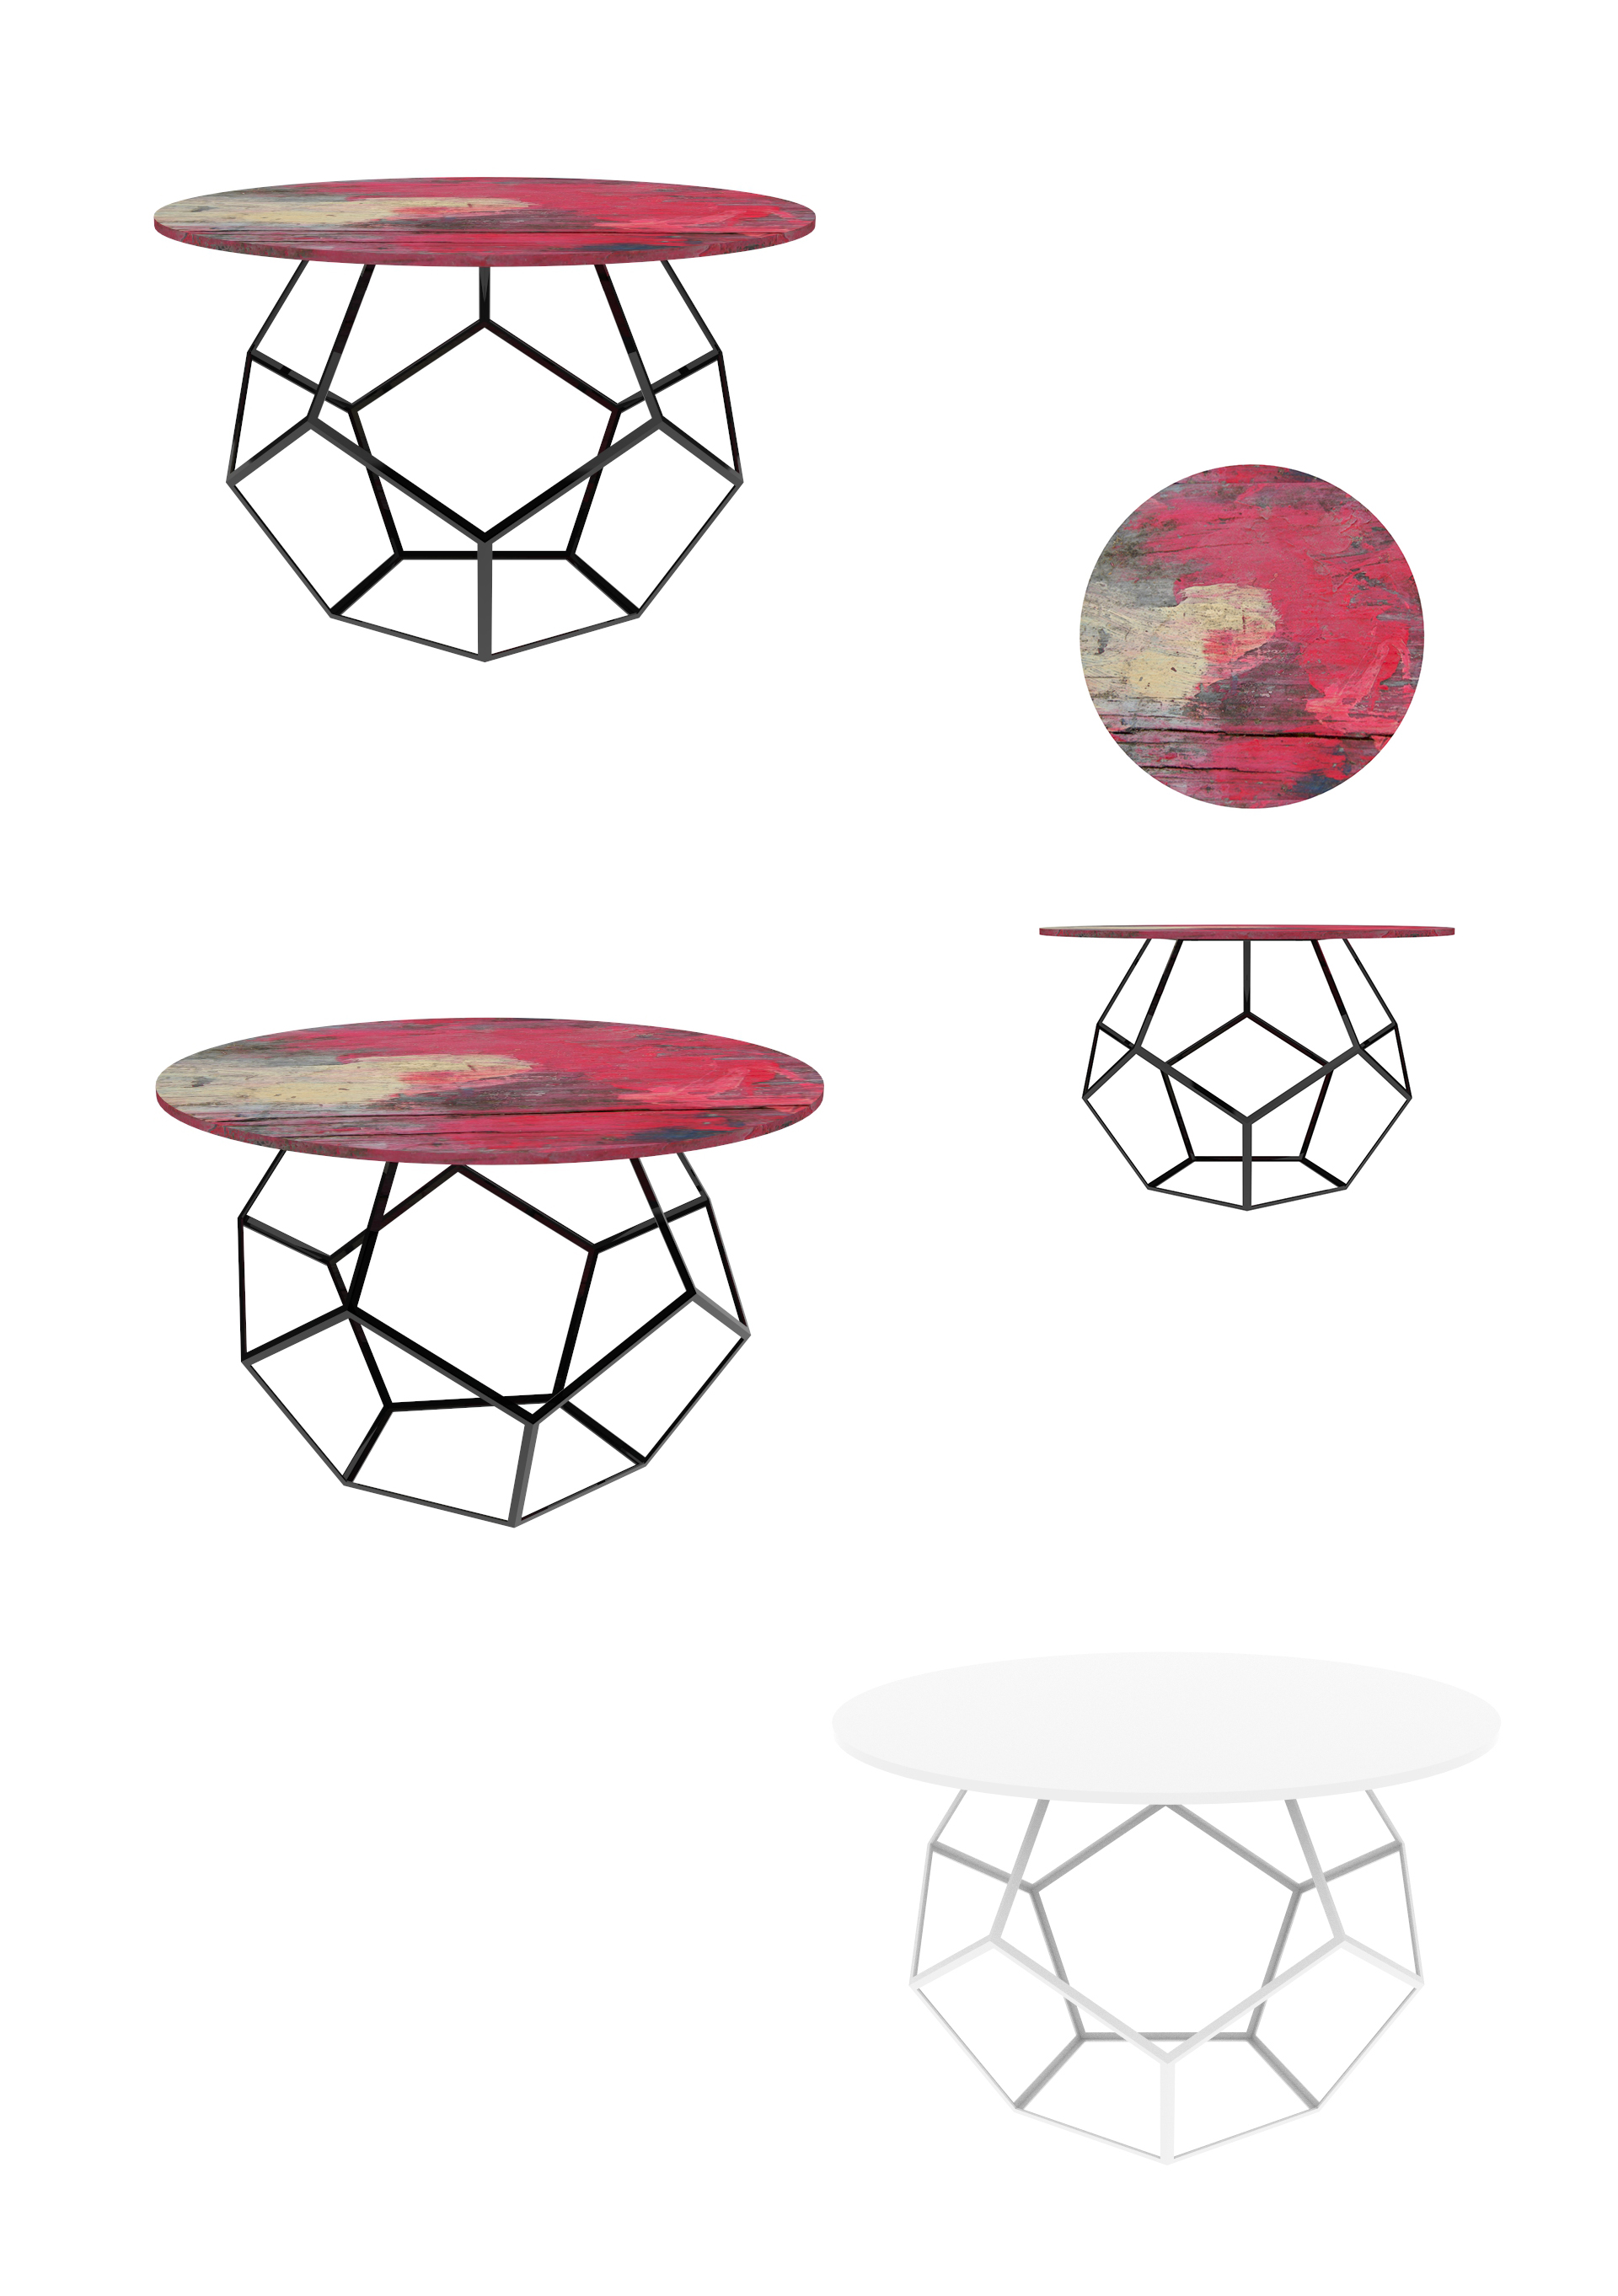 ball-coffee-table-pawlowska-design_1